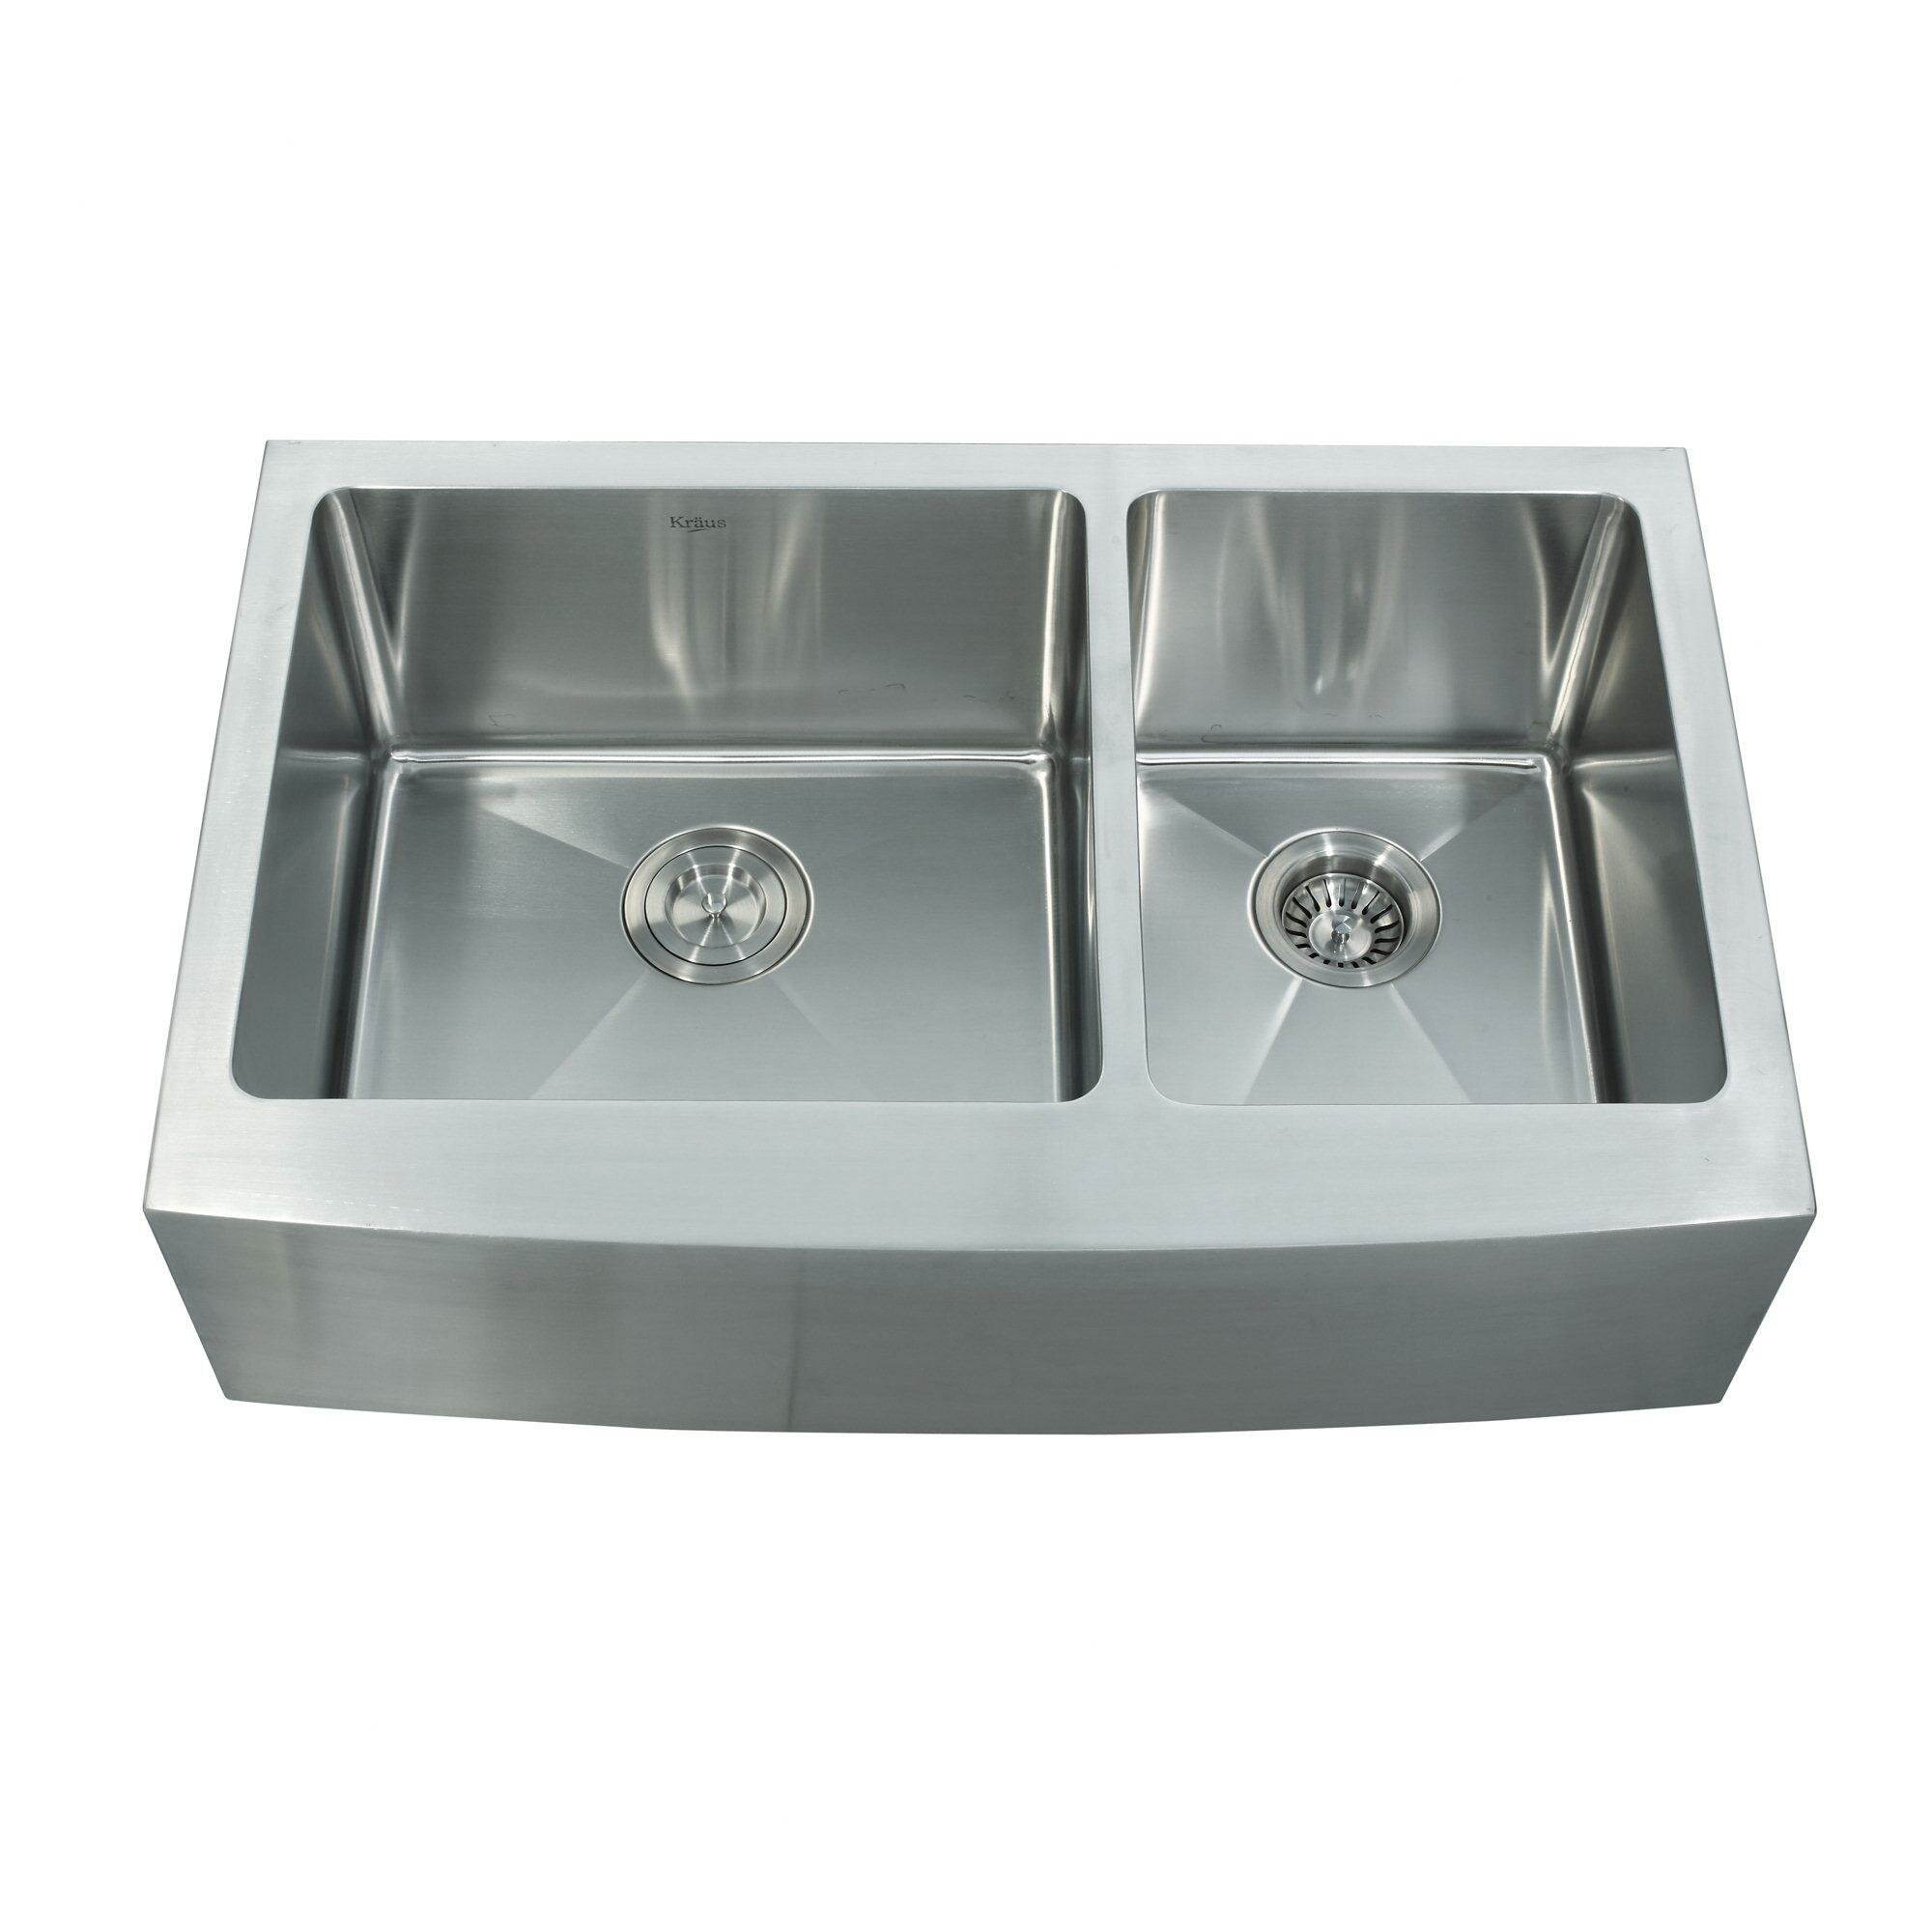 Kraus x double bowl farmhouse kitchen sink for Best kitchen faucet for double sink